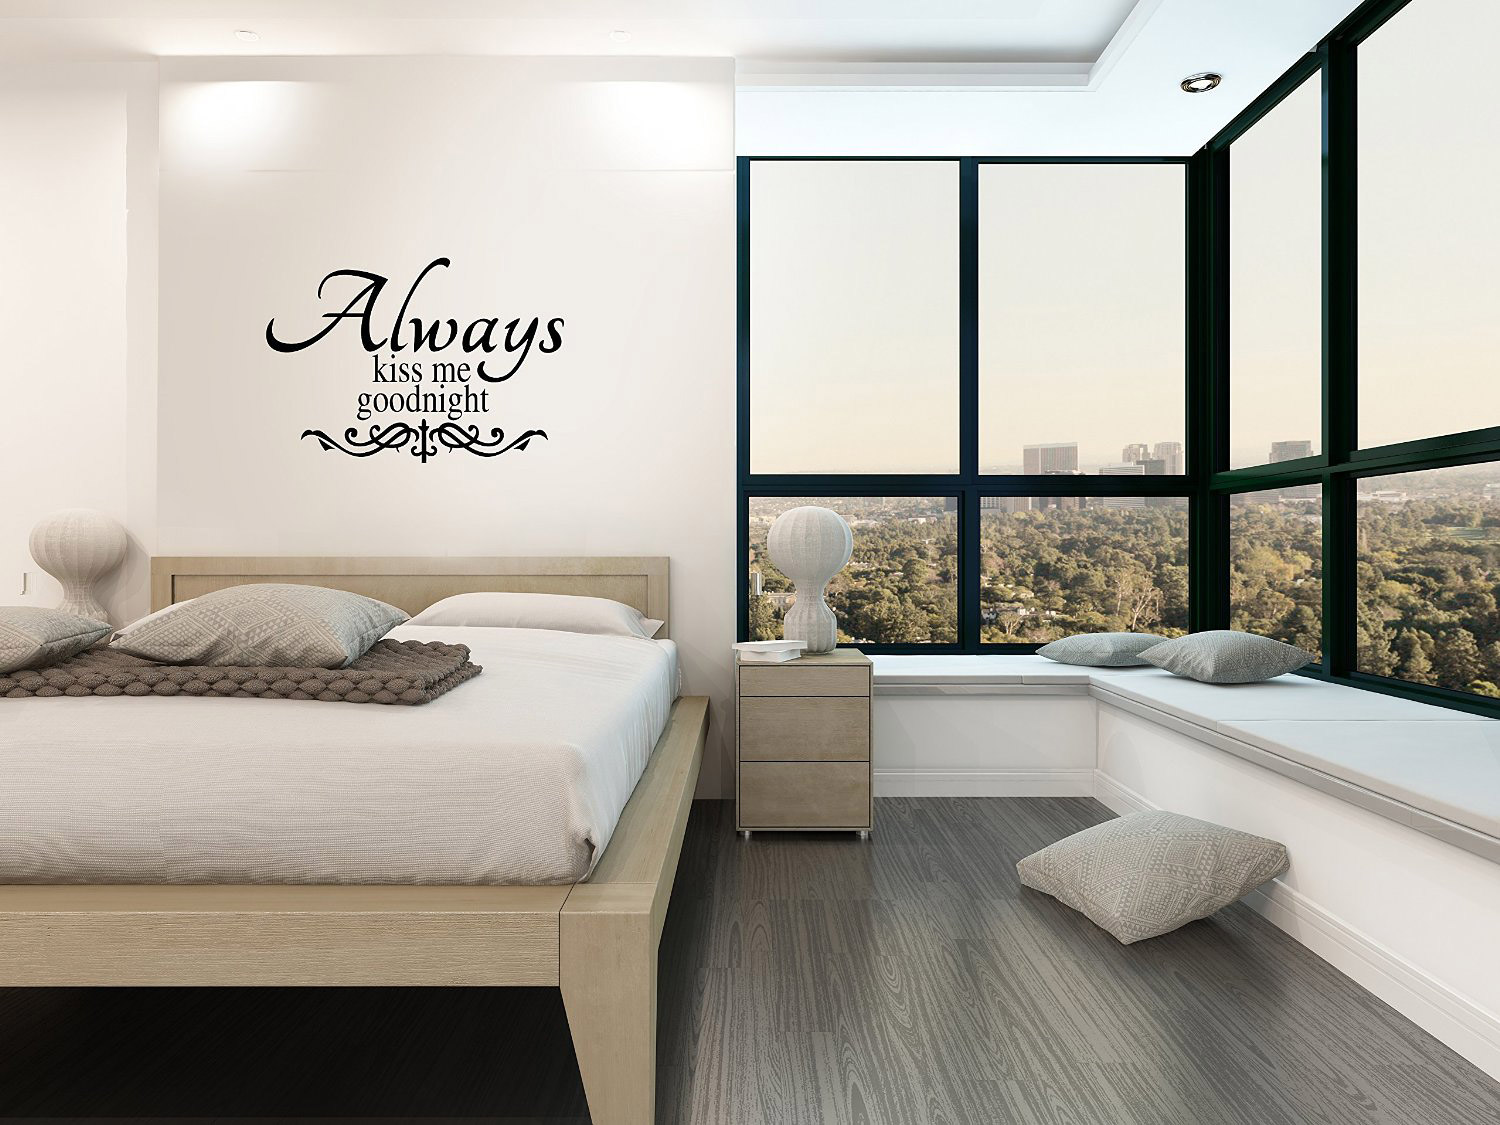 Always Kiss Me Goodnight Bedroom Wall Decal